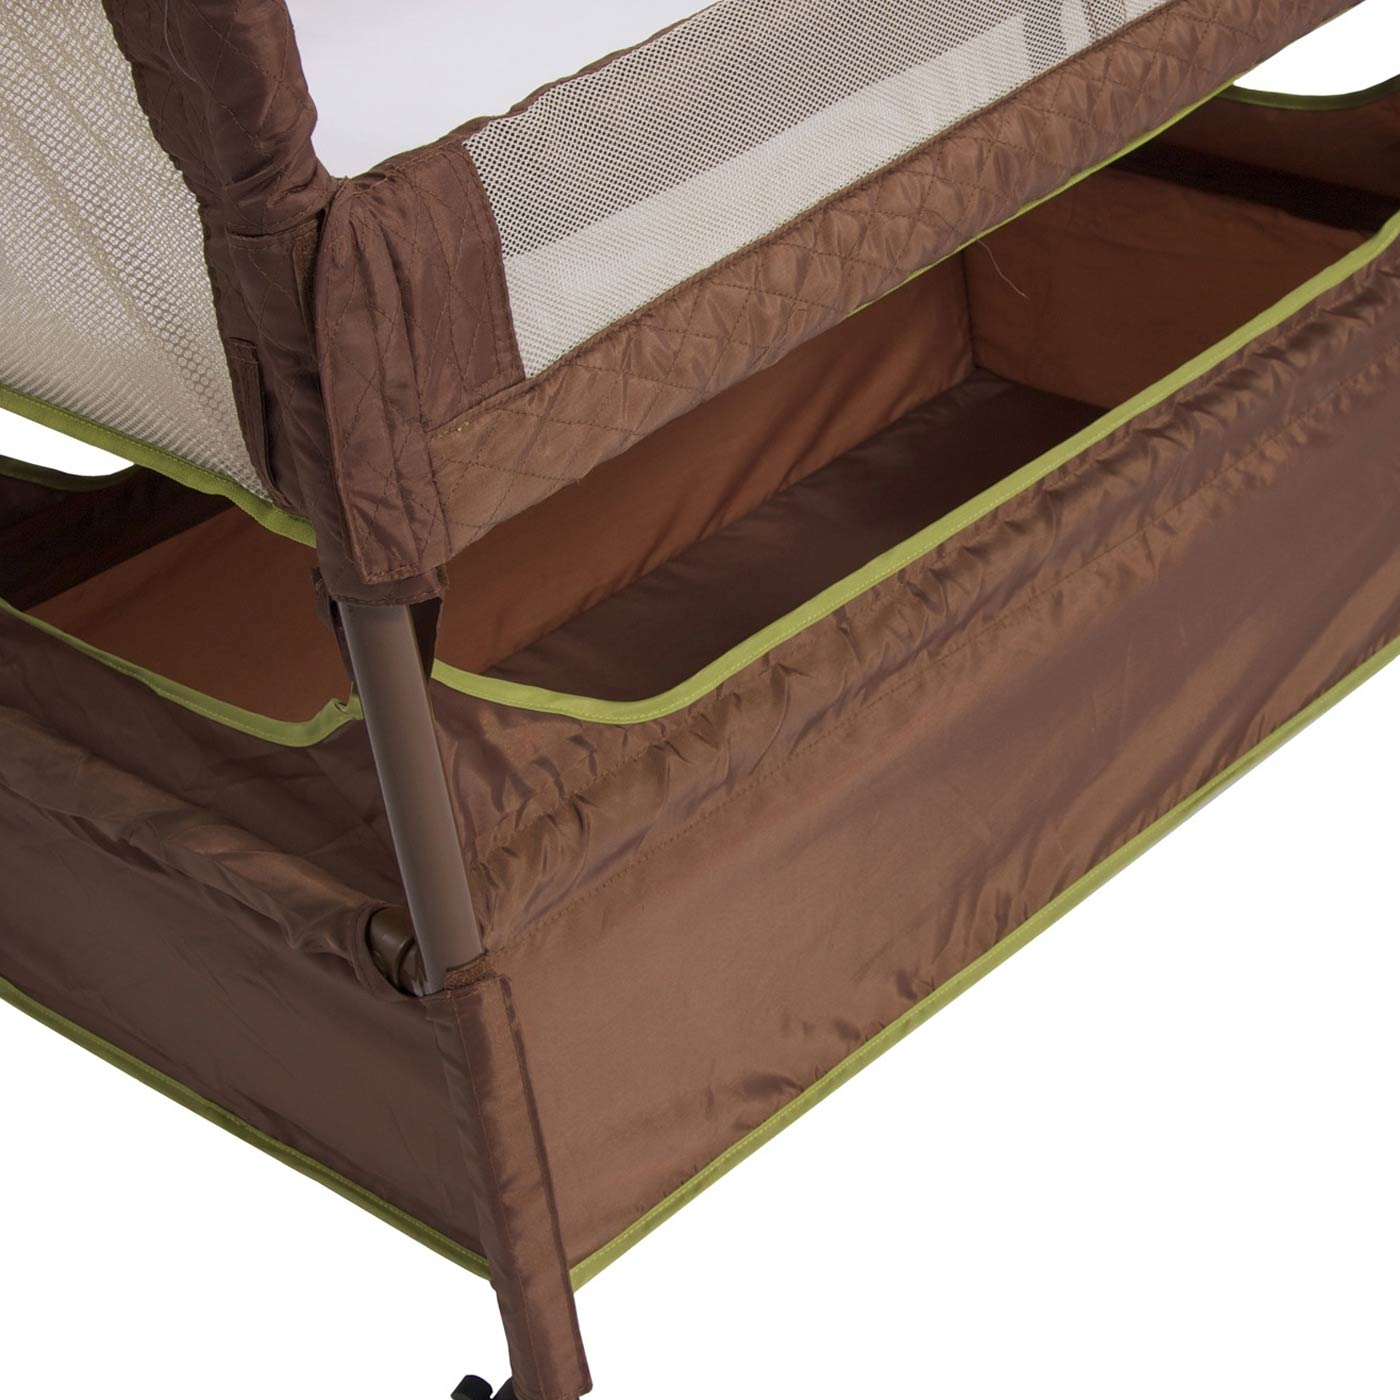 Arm s Reach Concepts Clear Vue Co-Sleeper in Cocoa Fern FREE SHIPPING 30db2d3ba